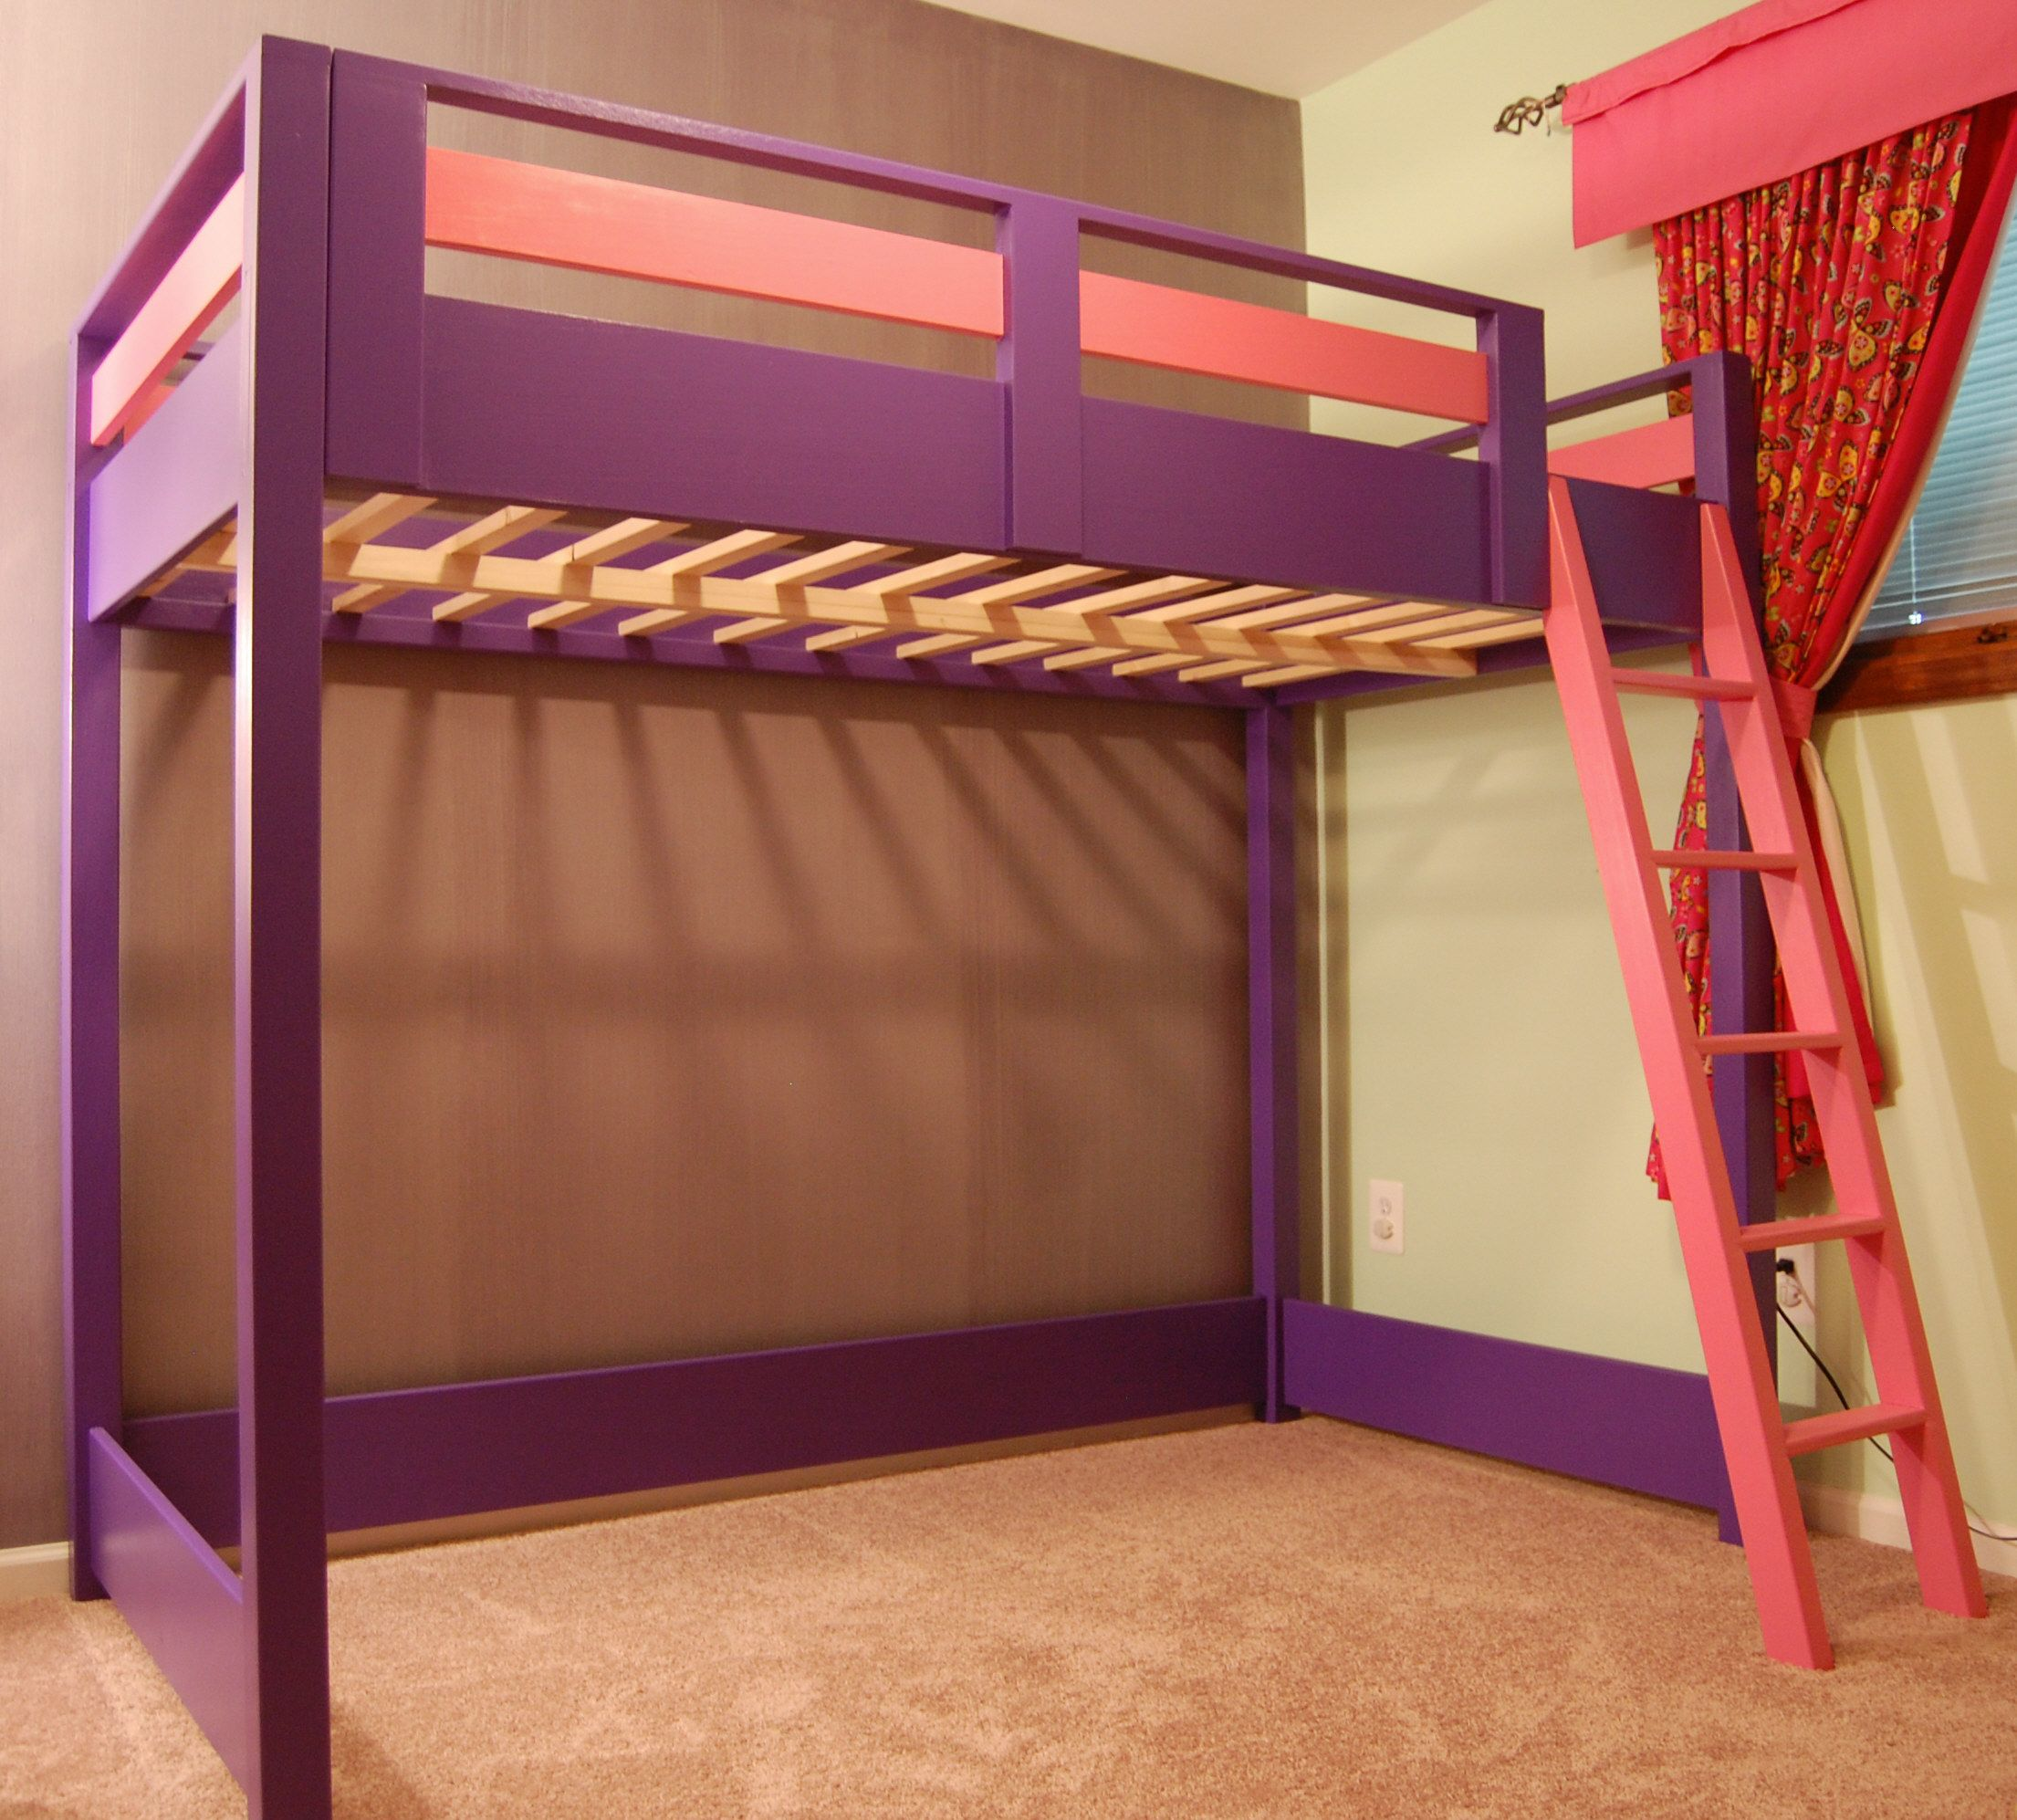 Small Homes That Use Lofts To Gain More Floor Space: A Loft Bed Is A Great Space Saver For A Kid